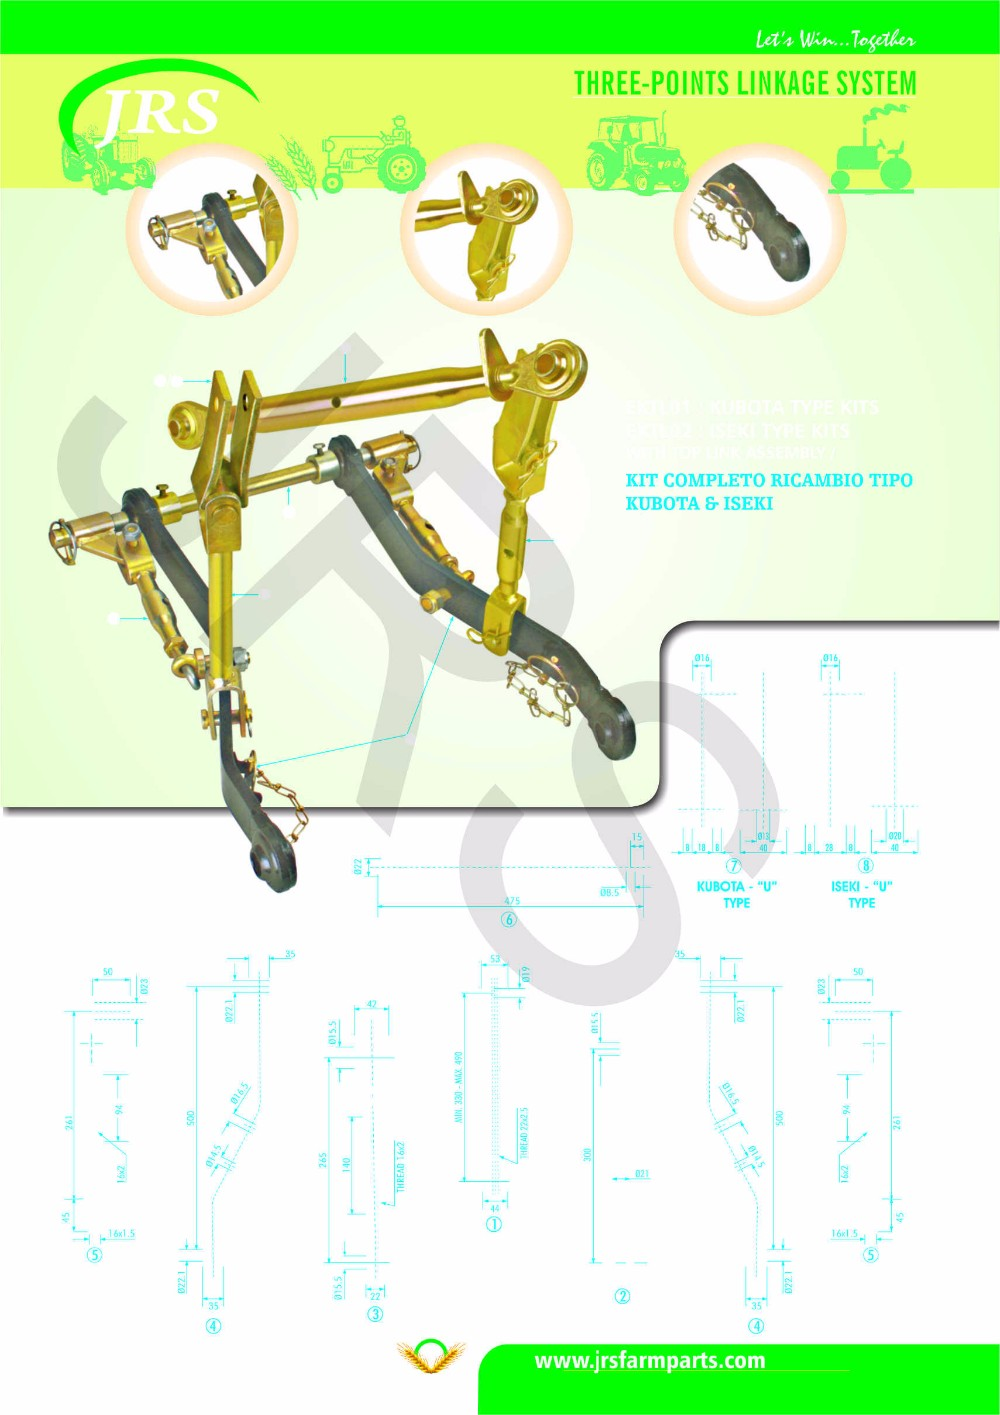 Best Price for Linkage Kit